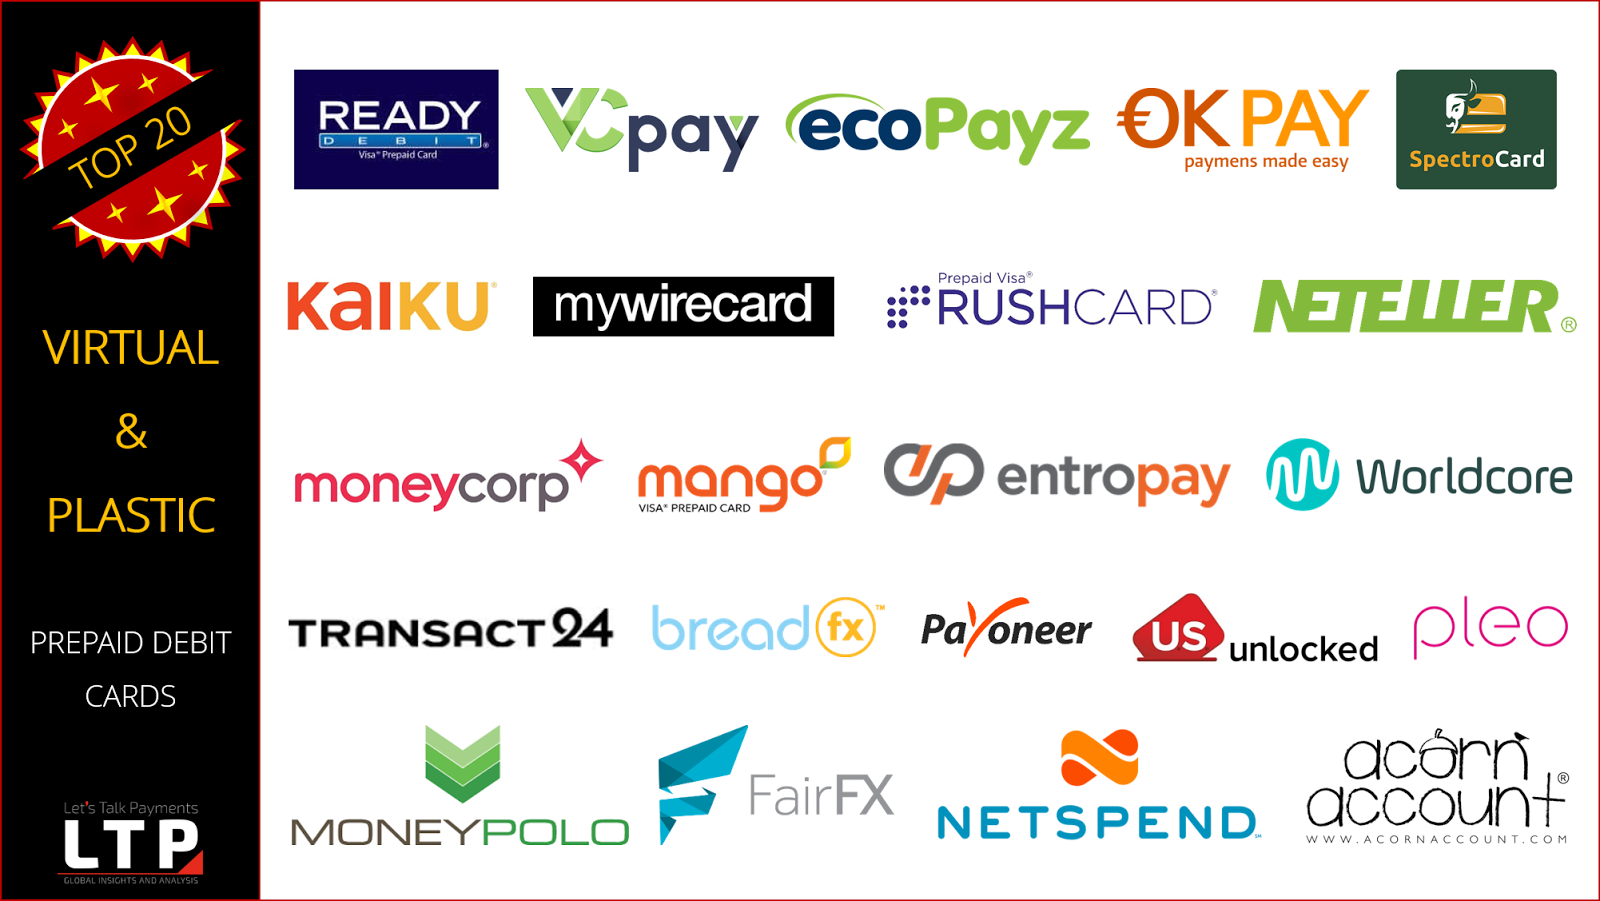 virtual and plastic prepaid debit cards - What Prepaid Card Can Be Used Internationally